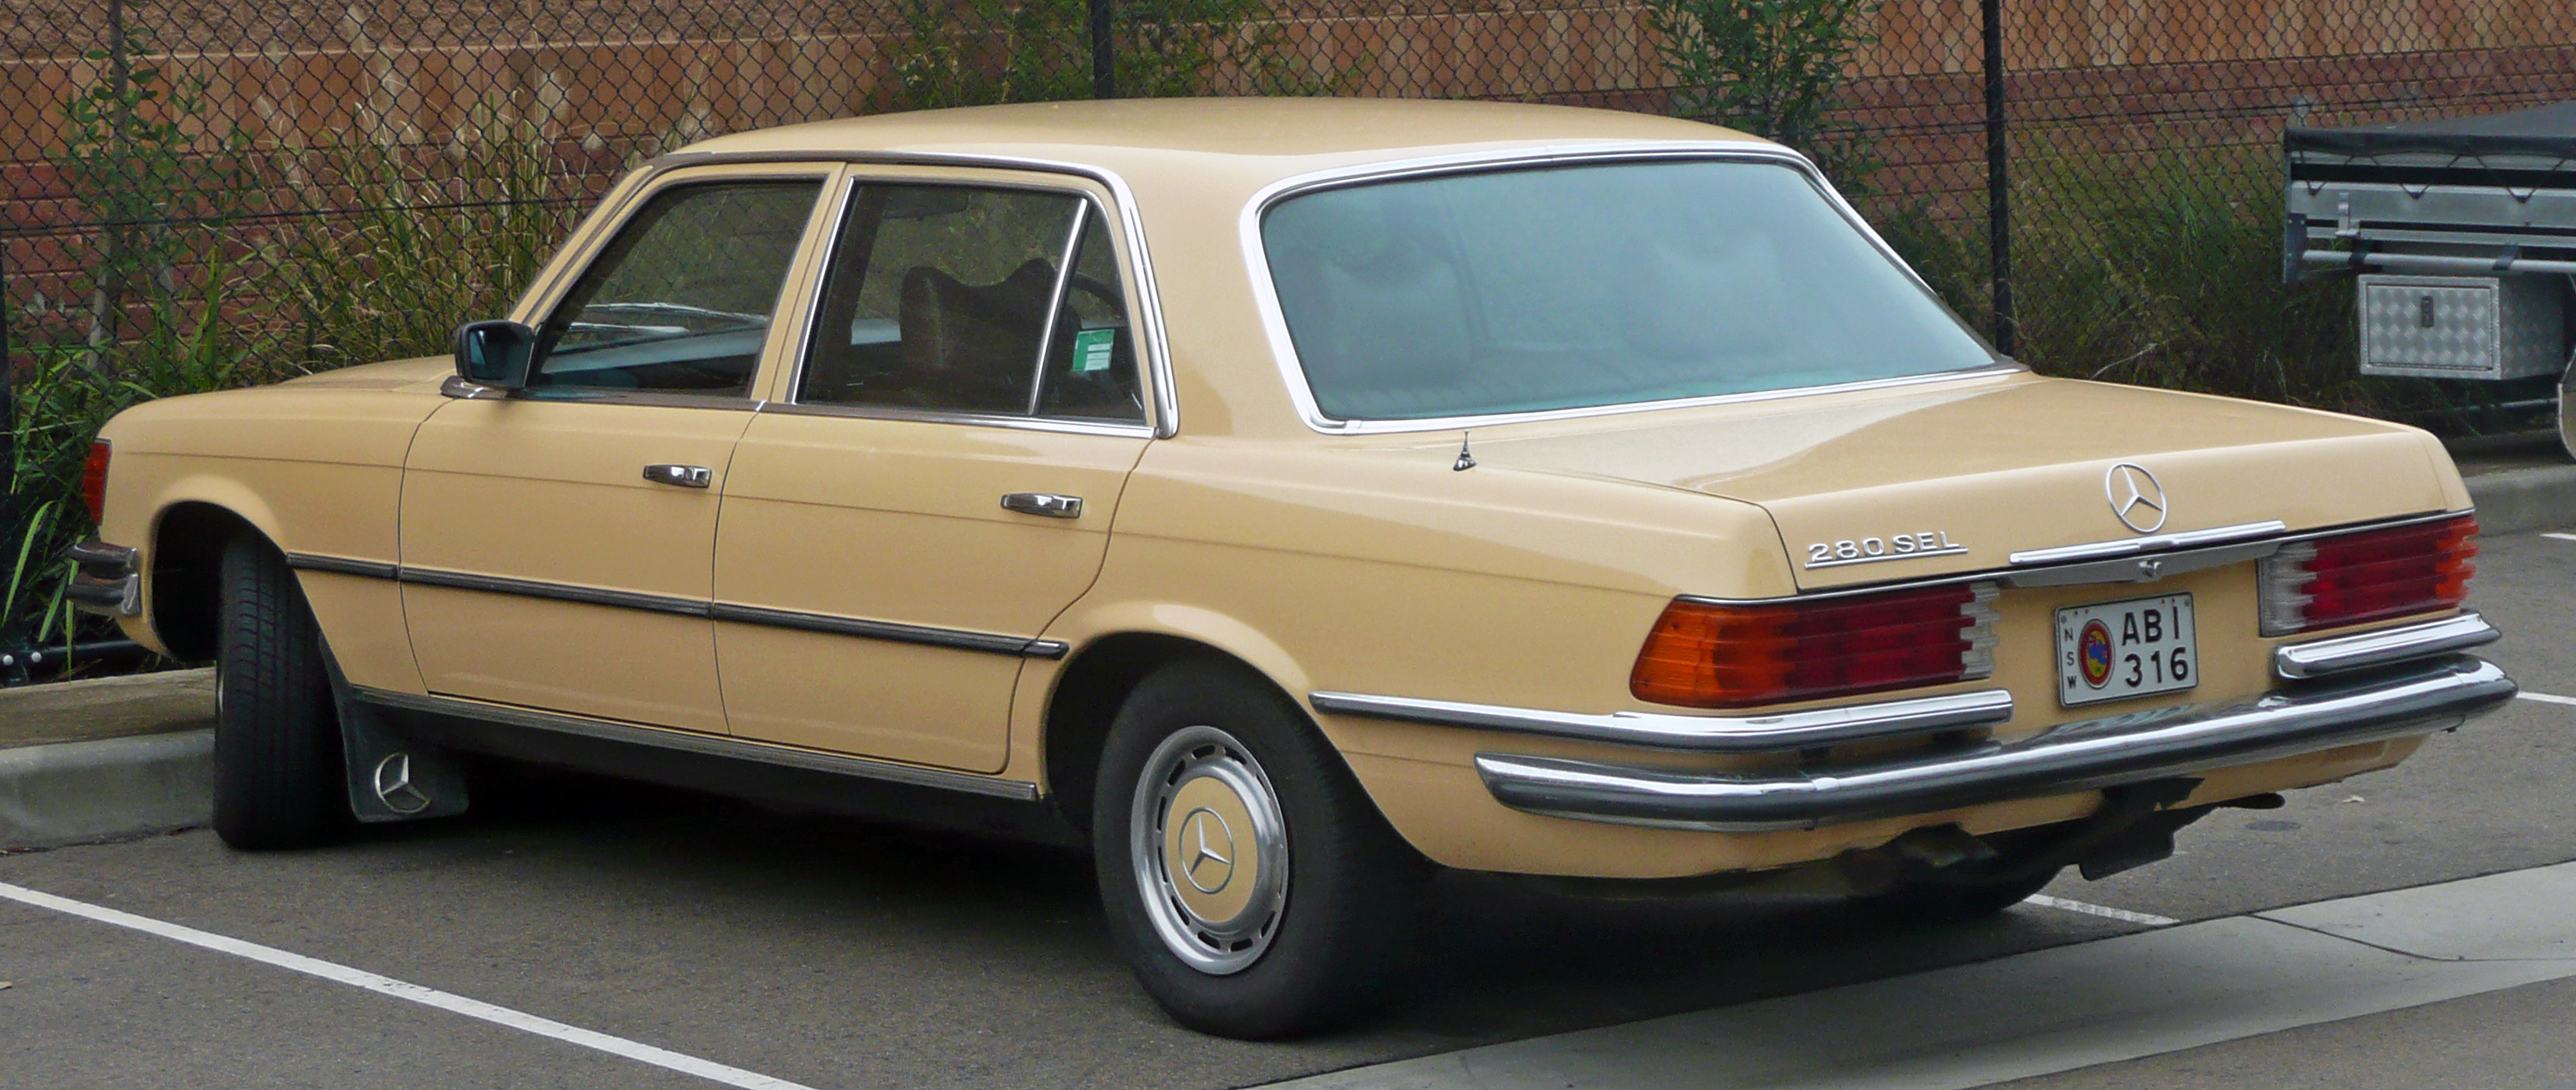 1980 mercedes benz 280 photos informations articles for 1980s mercedes benz